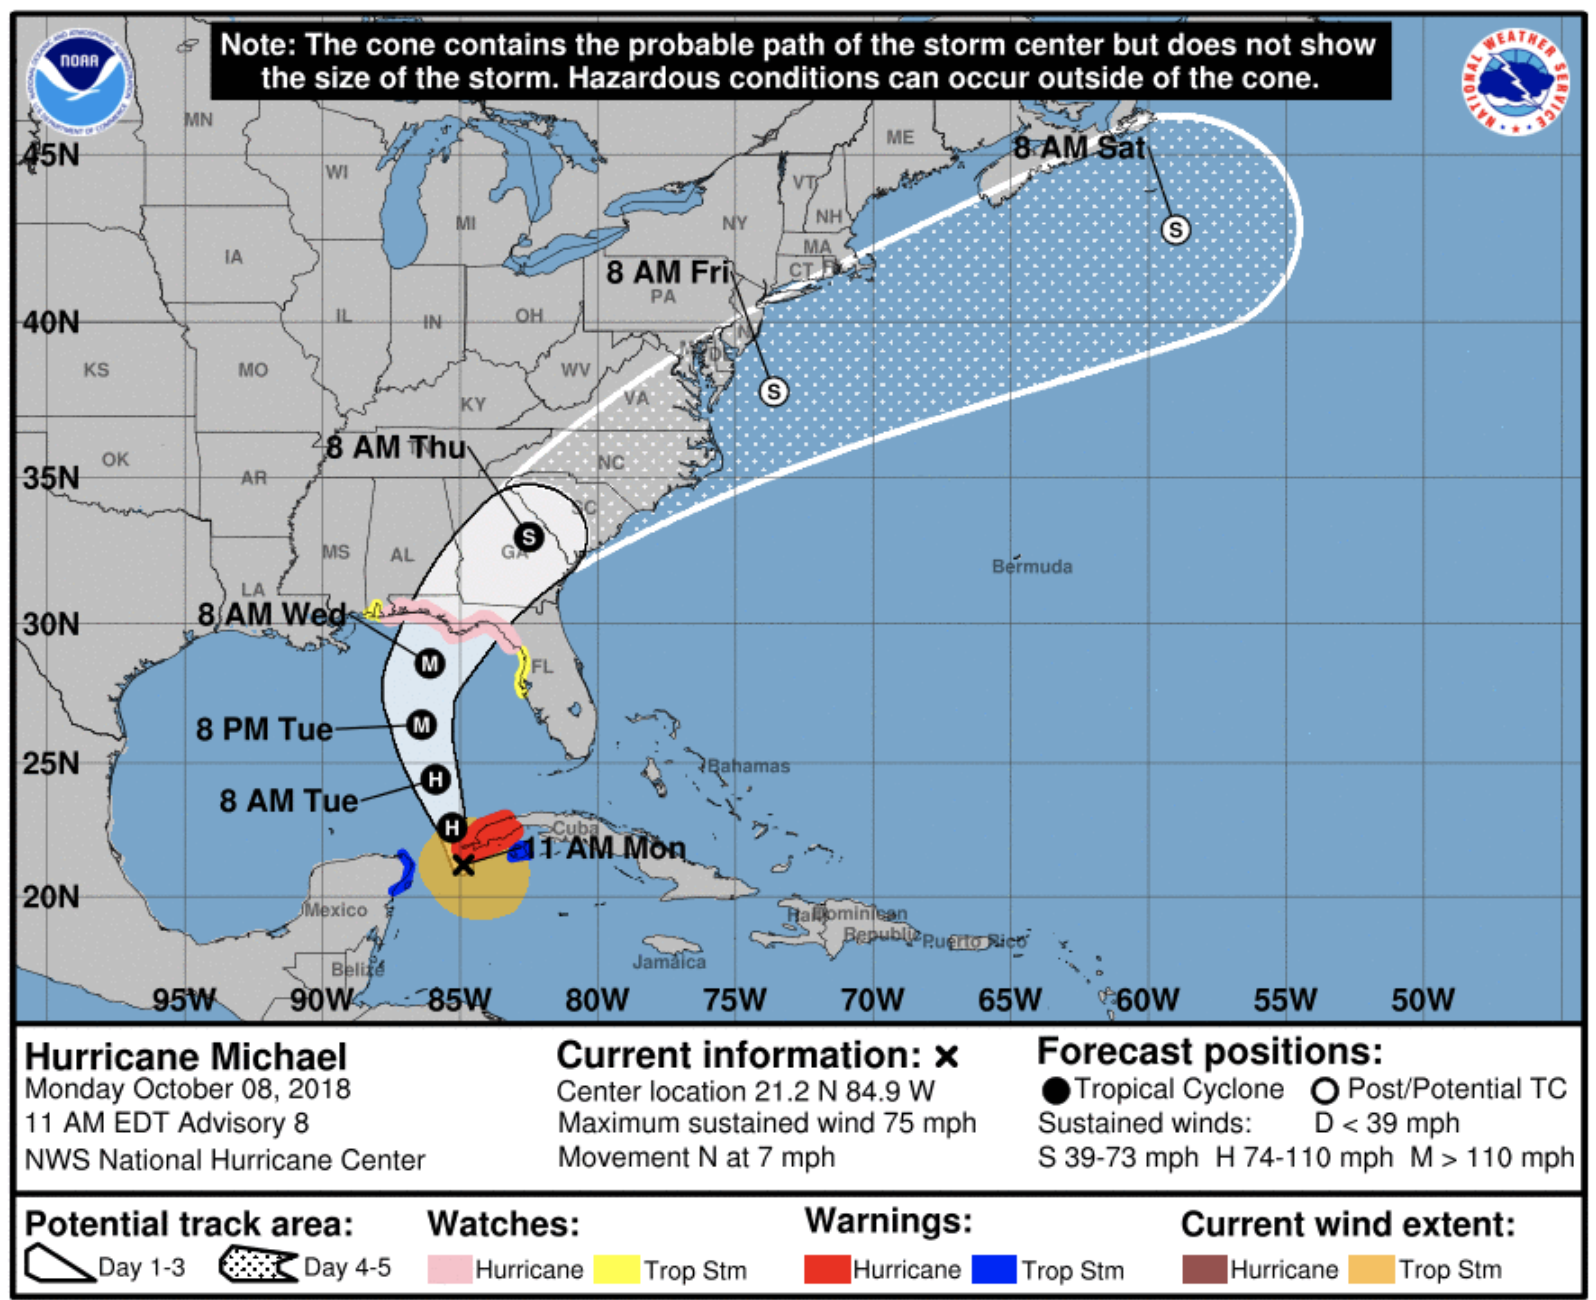 Hurricane Michael key messages